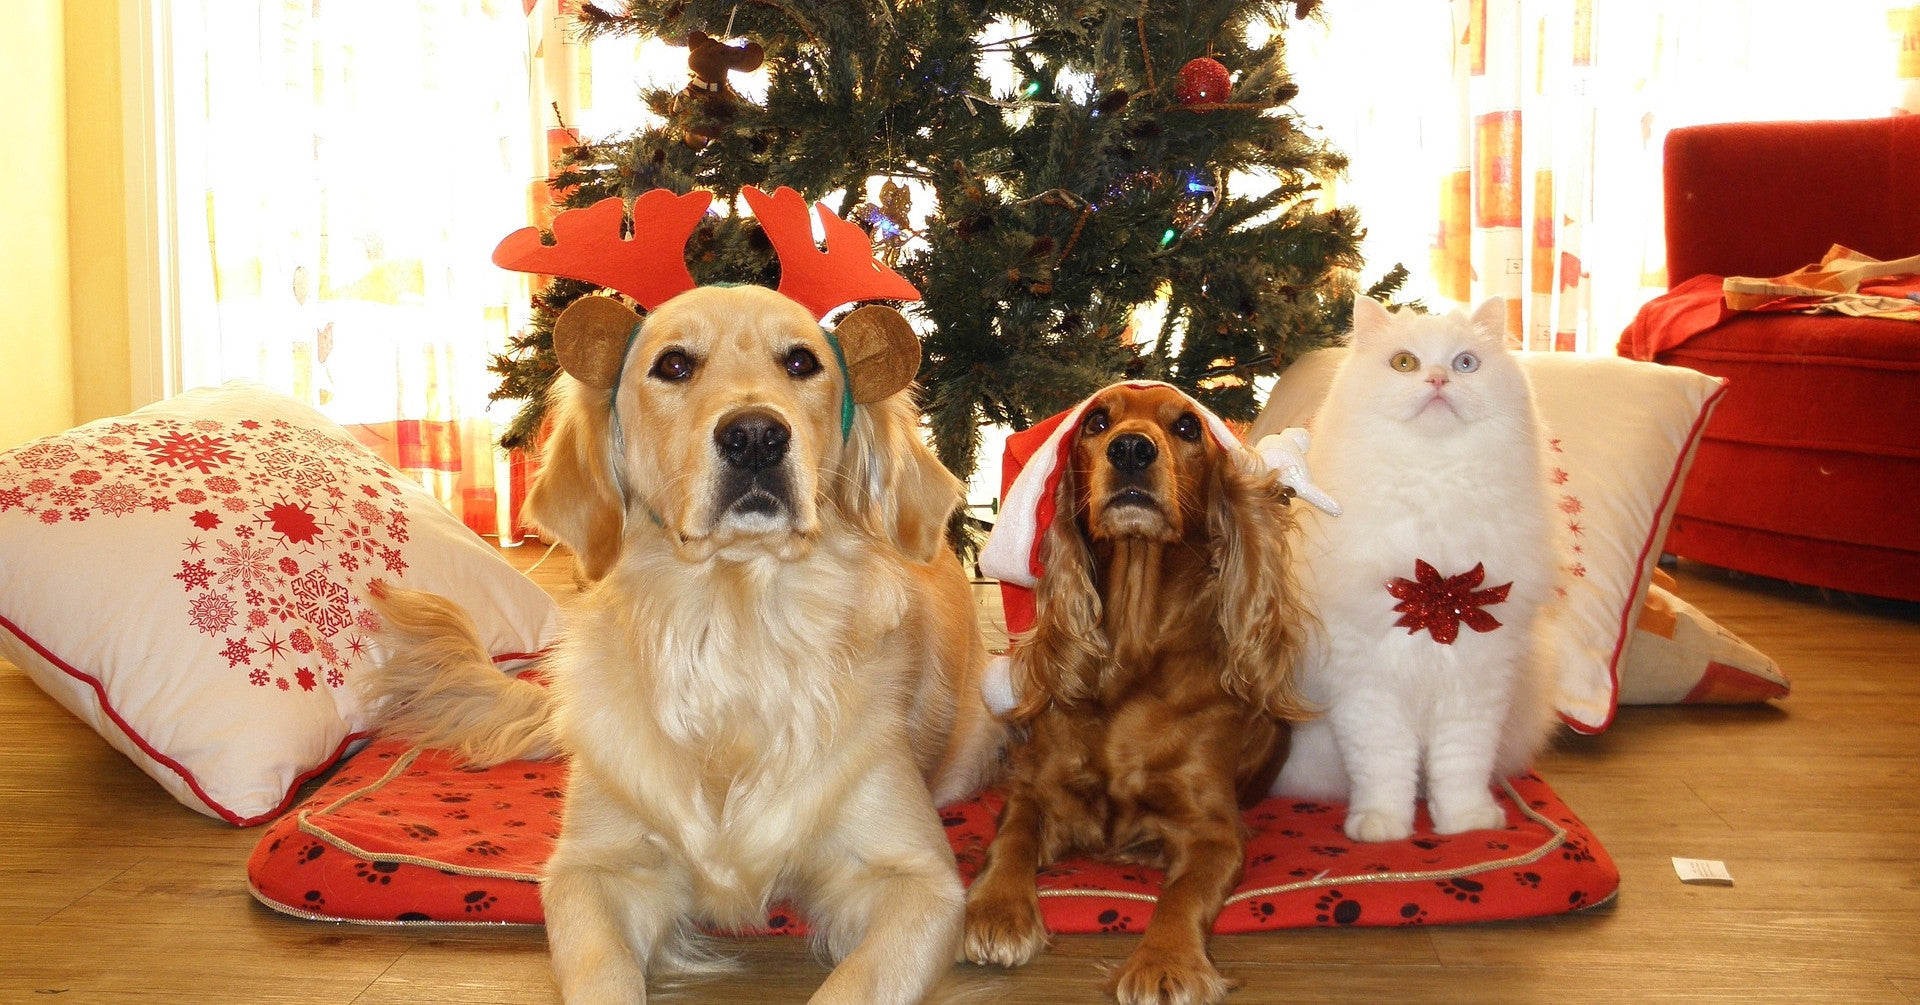 Our 2016 Pet Holiday Gift Guide